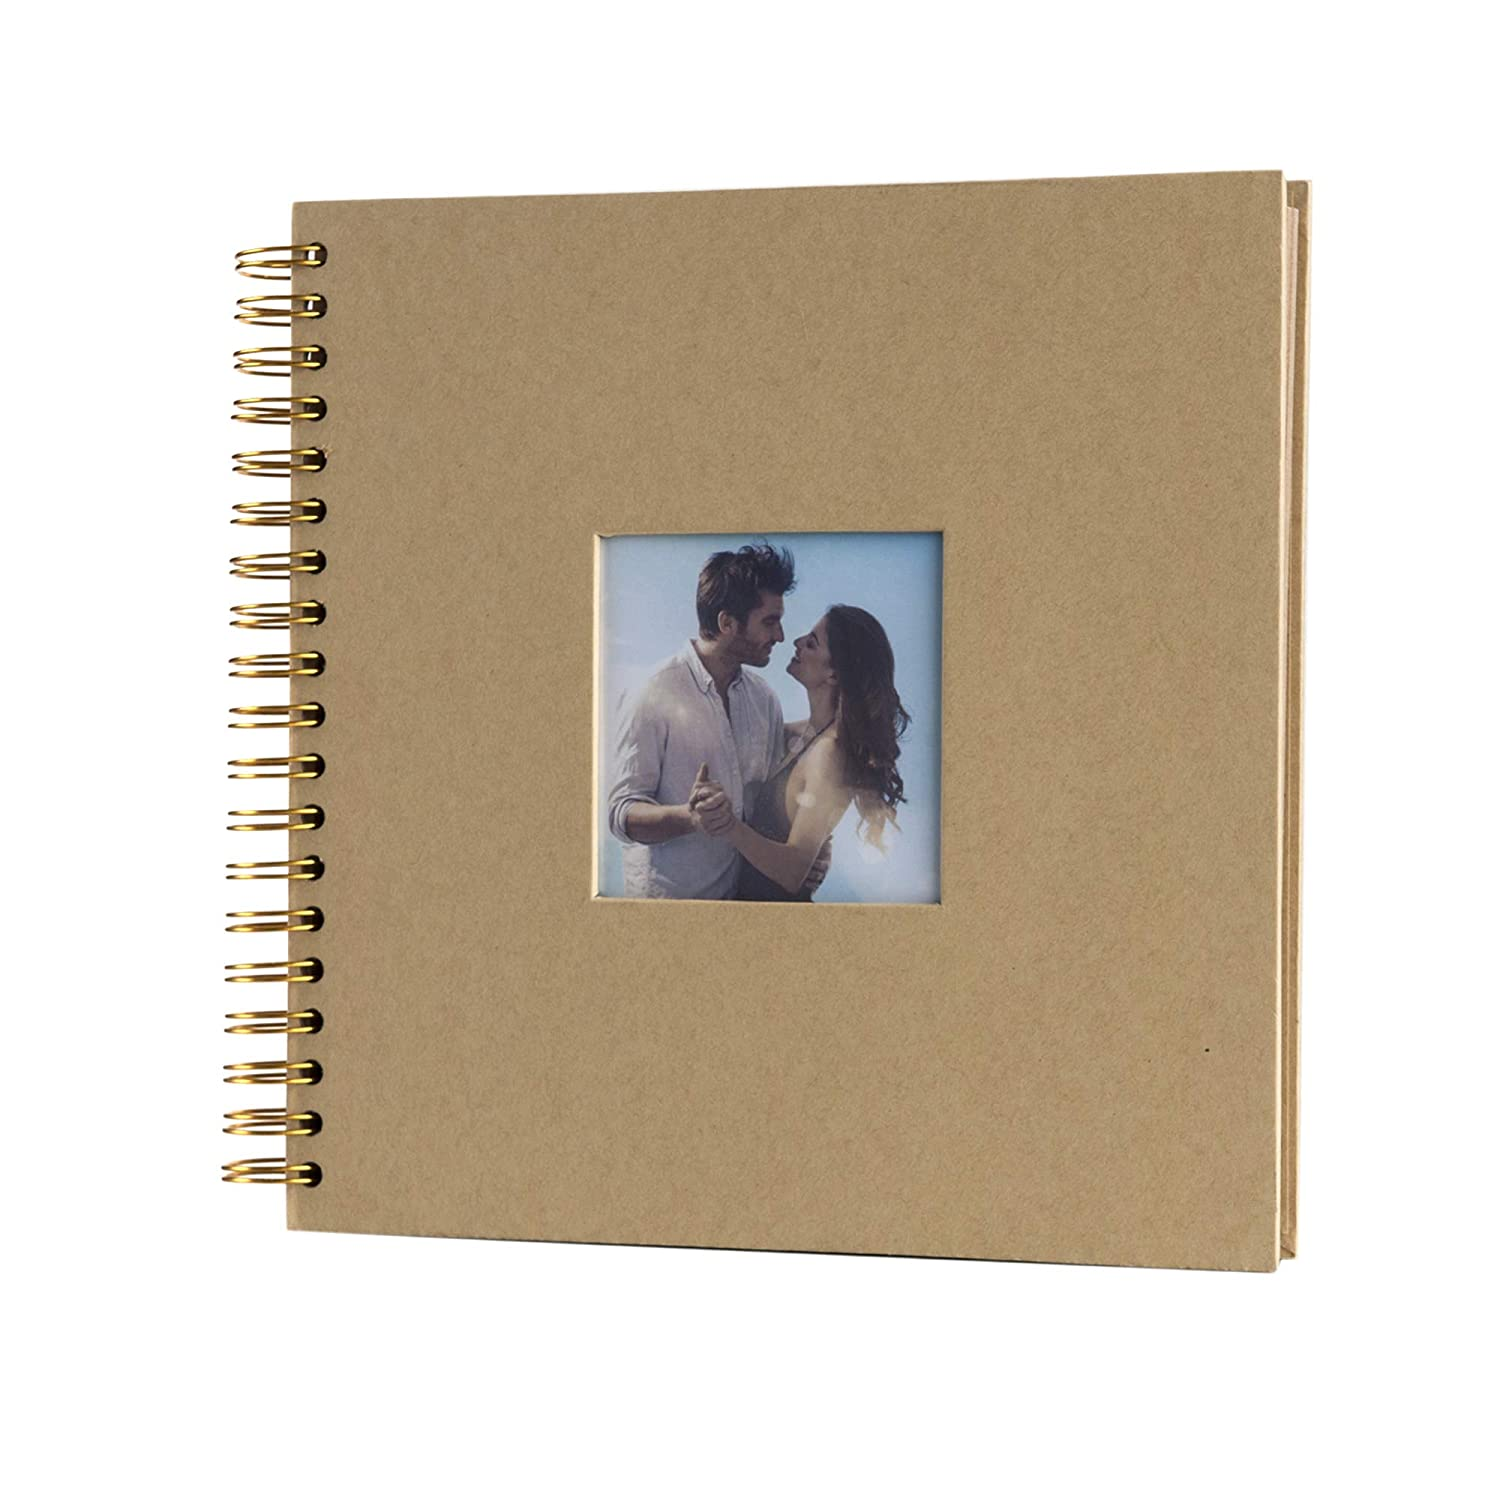 Brown, 10 x 10 inch 10 x 10 Inch DIY Scrapbook Photo Album with Cover Photo 80 Pages Hardcover Craft Paper Photo Album for Guest Book Anniversary Valentines Day Gifts